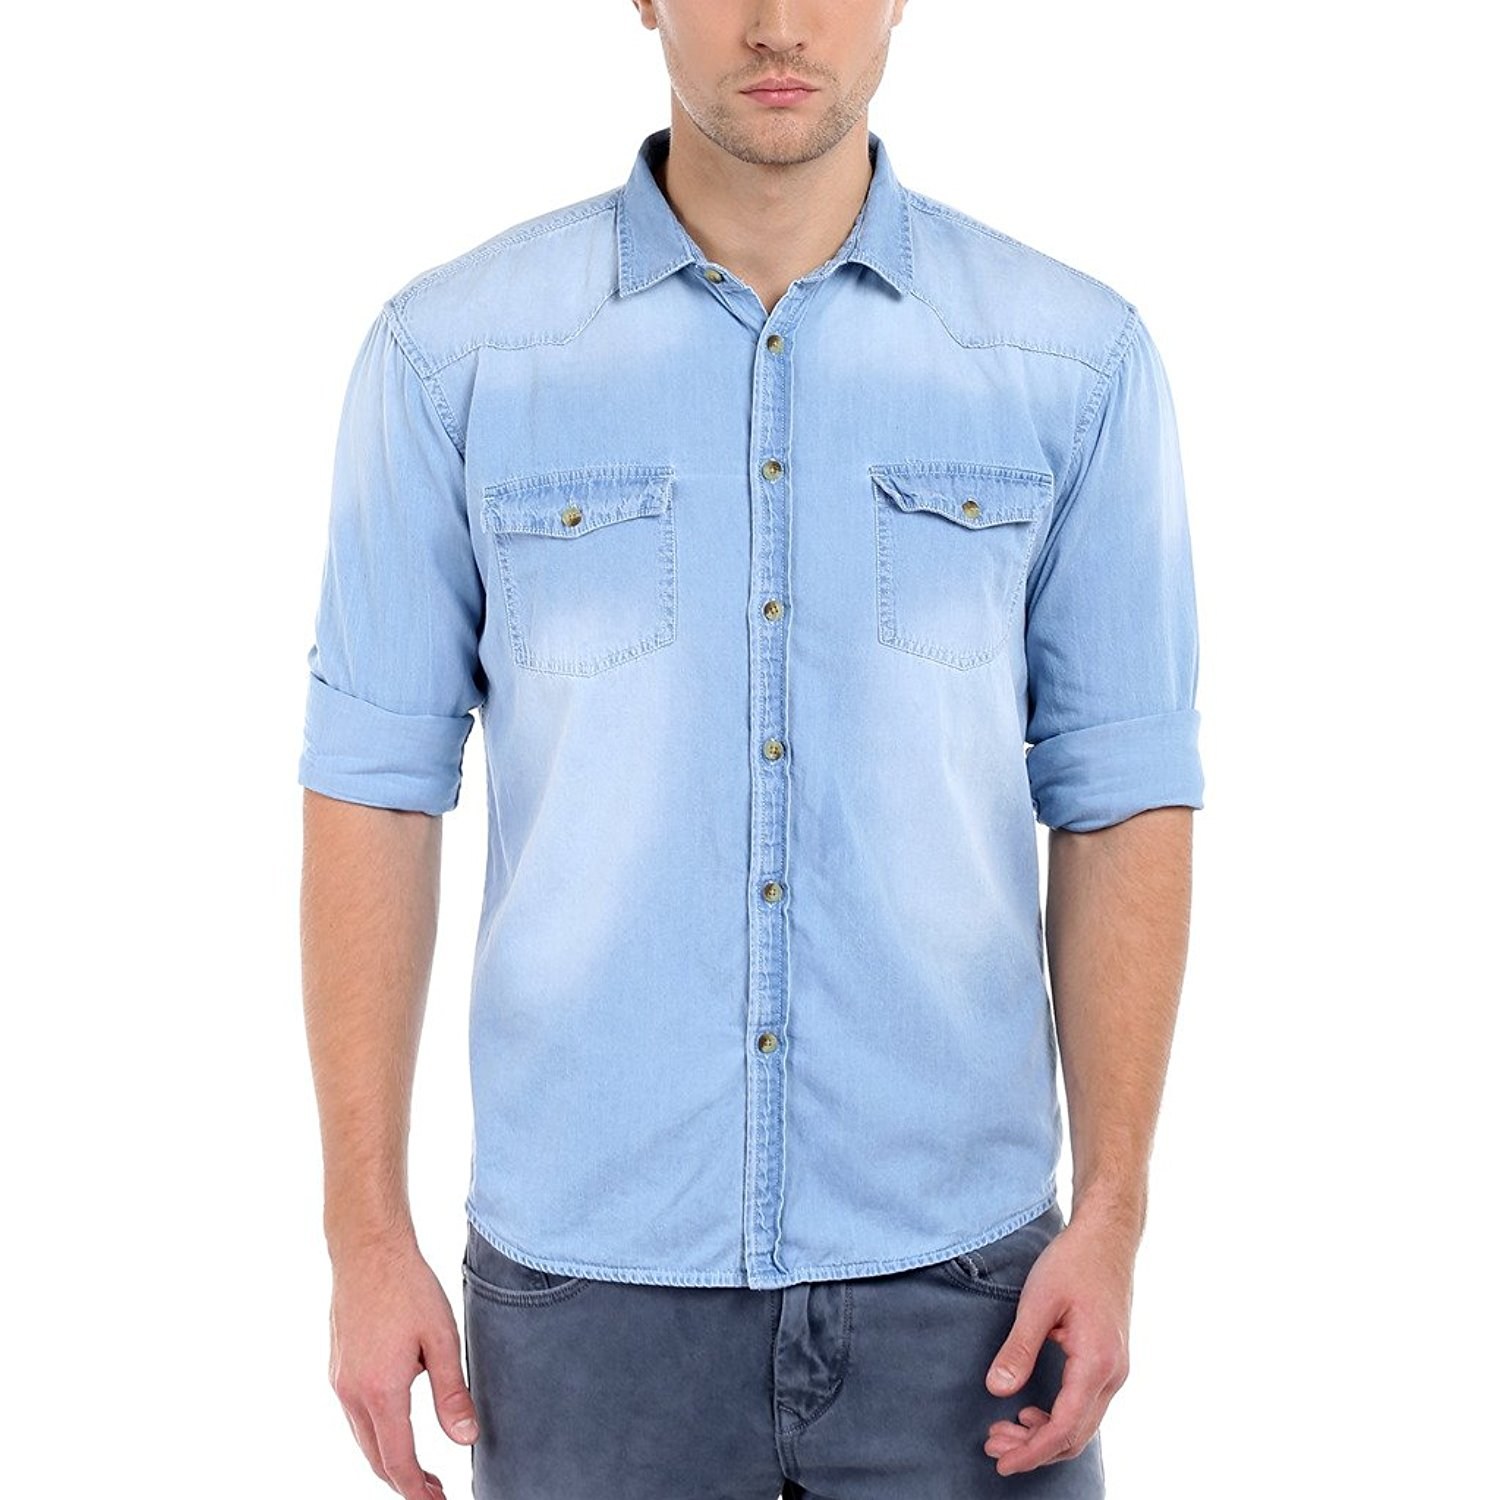 Long Sleeve Denim Shirts For Men | Light blue jeans Denim Shirts for men